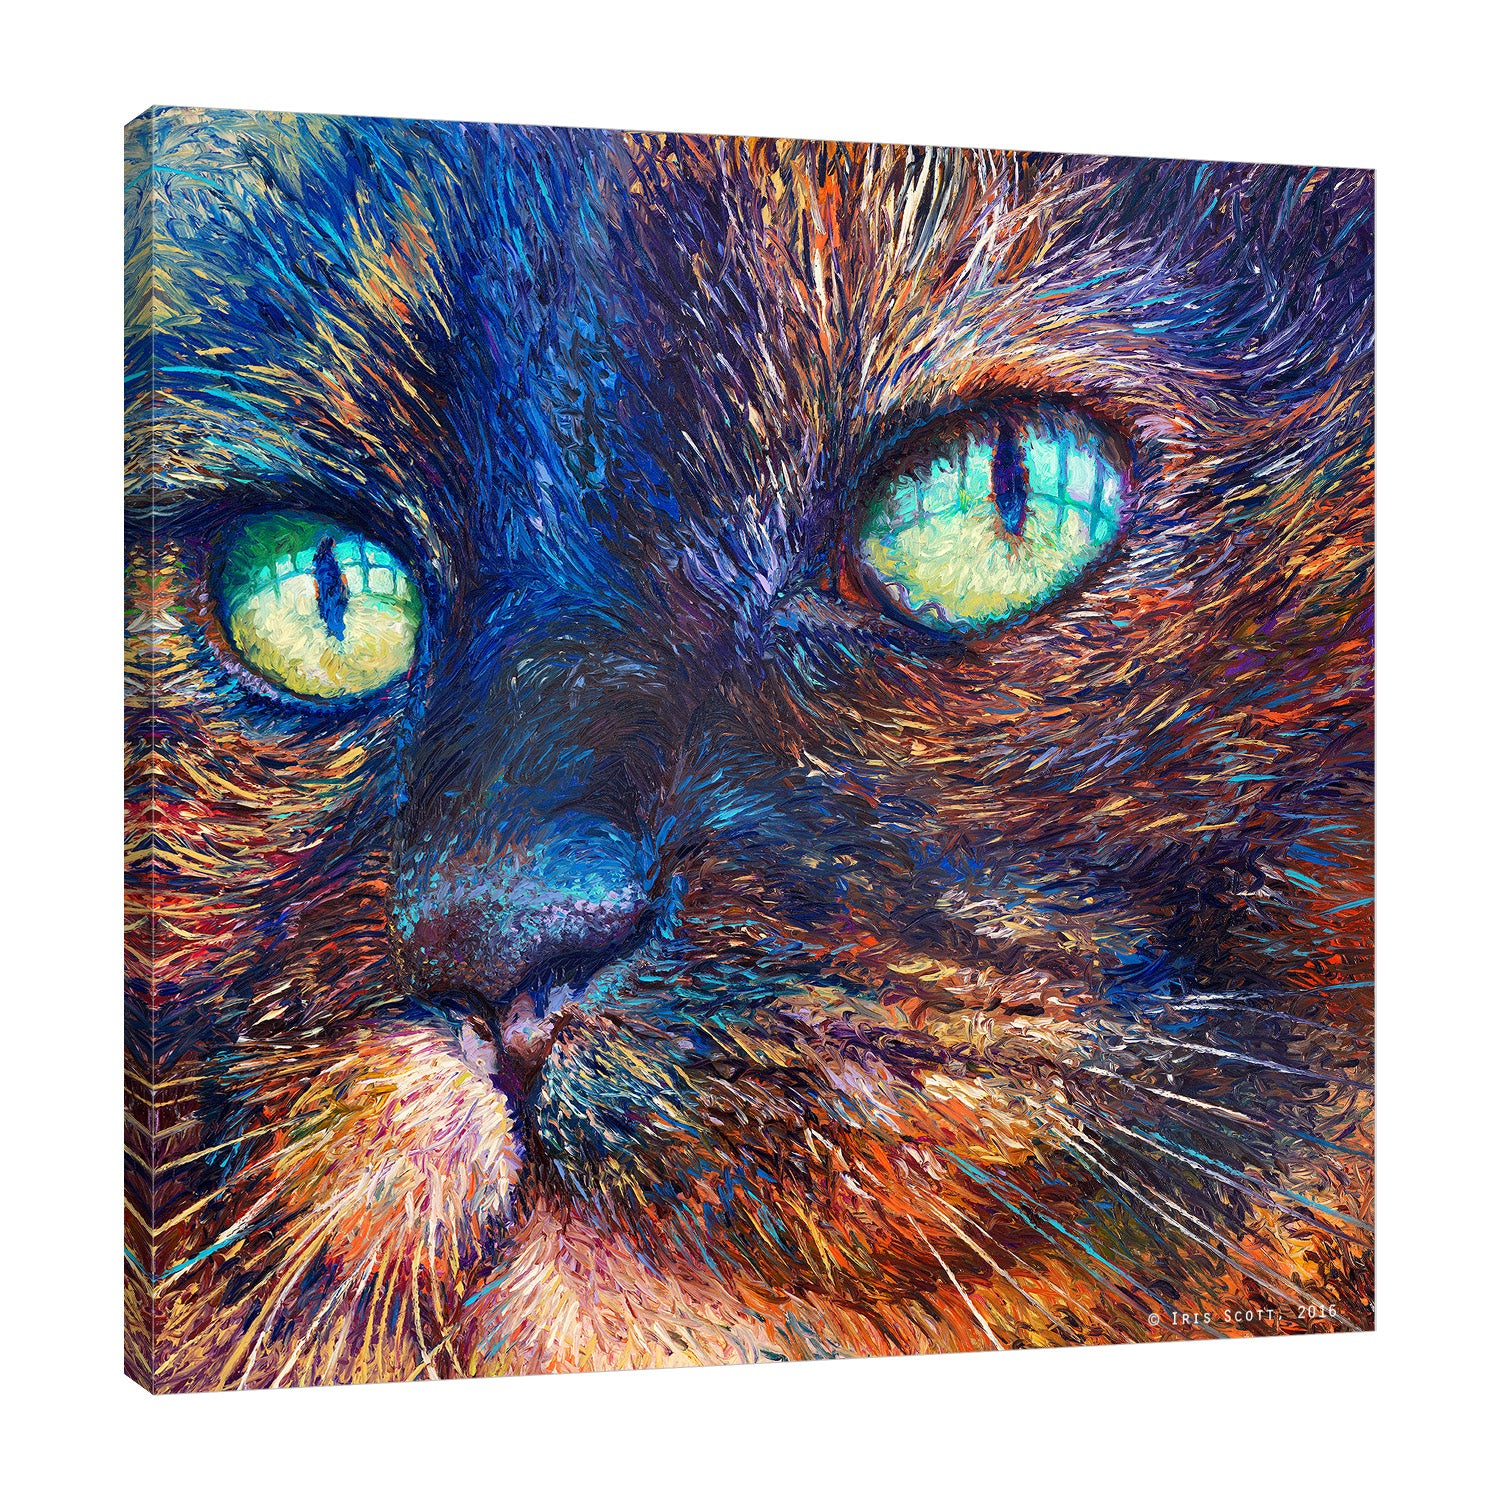 Iris-Scott,Modern & Contemporary,Animals,impressionism,animals,cats.close ups,whiskers,